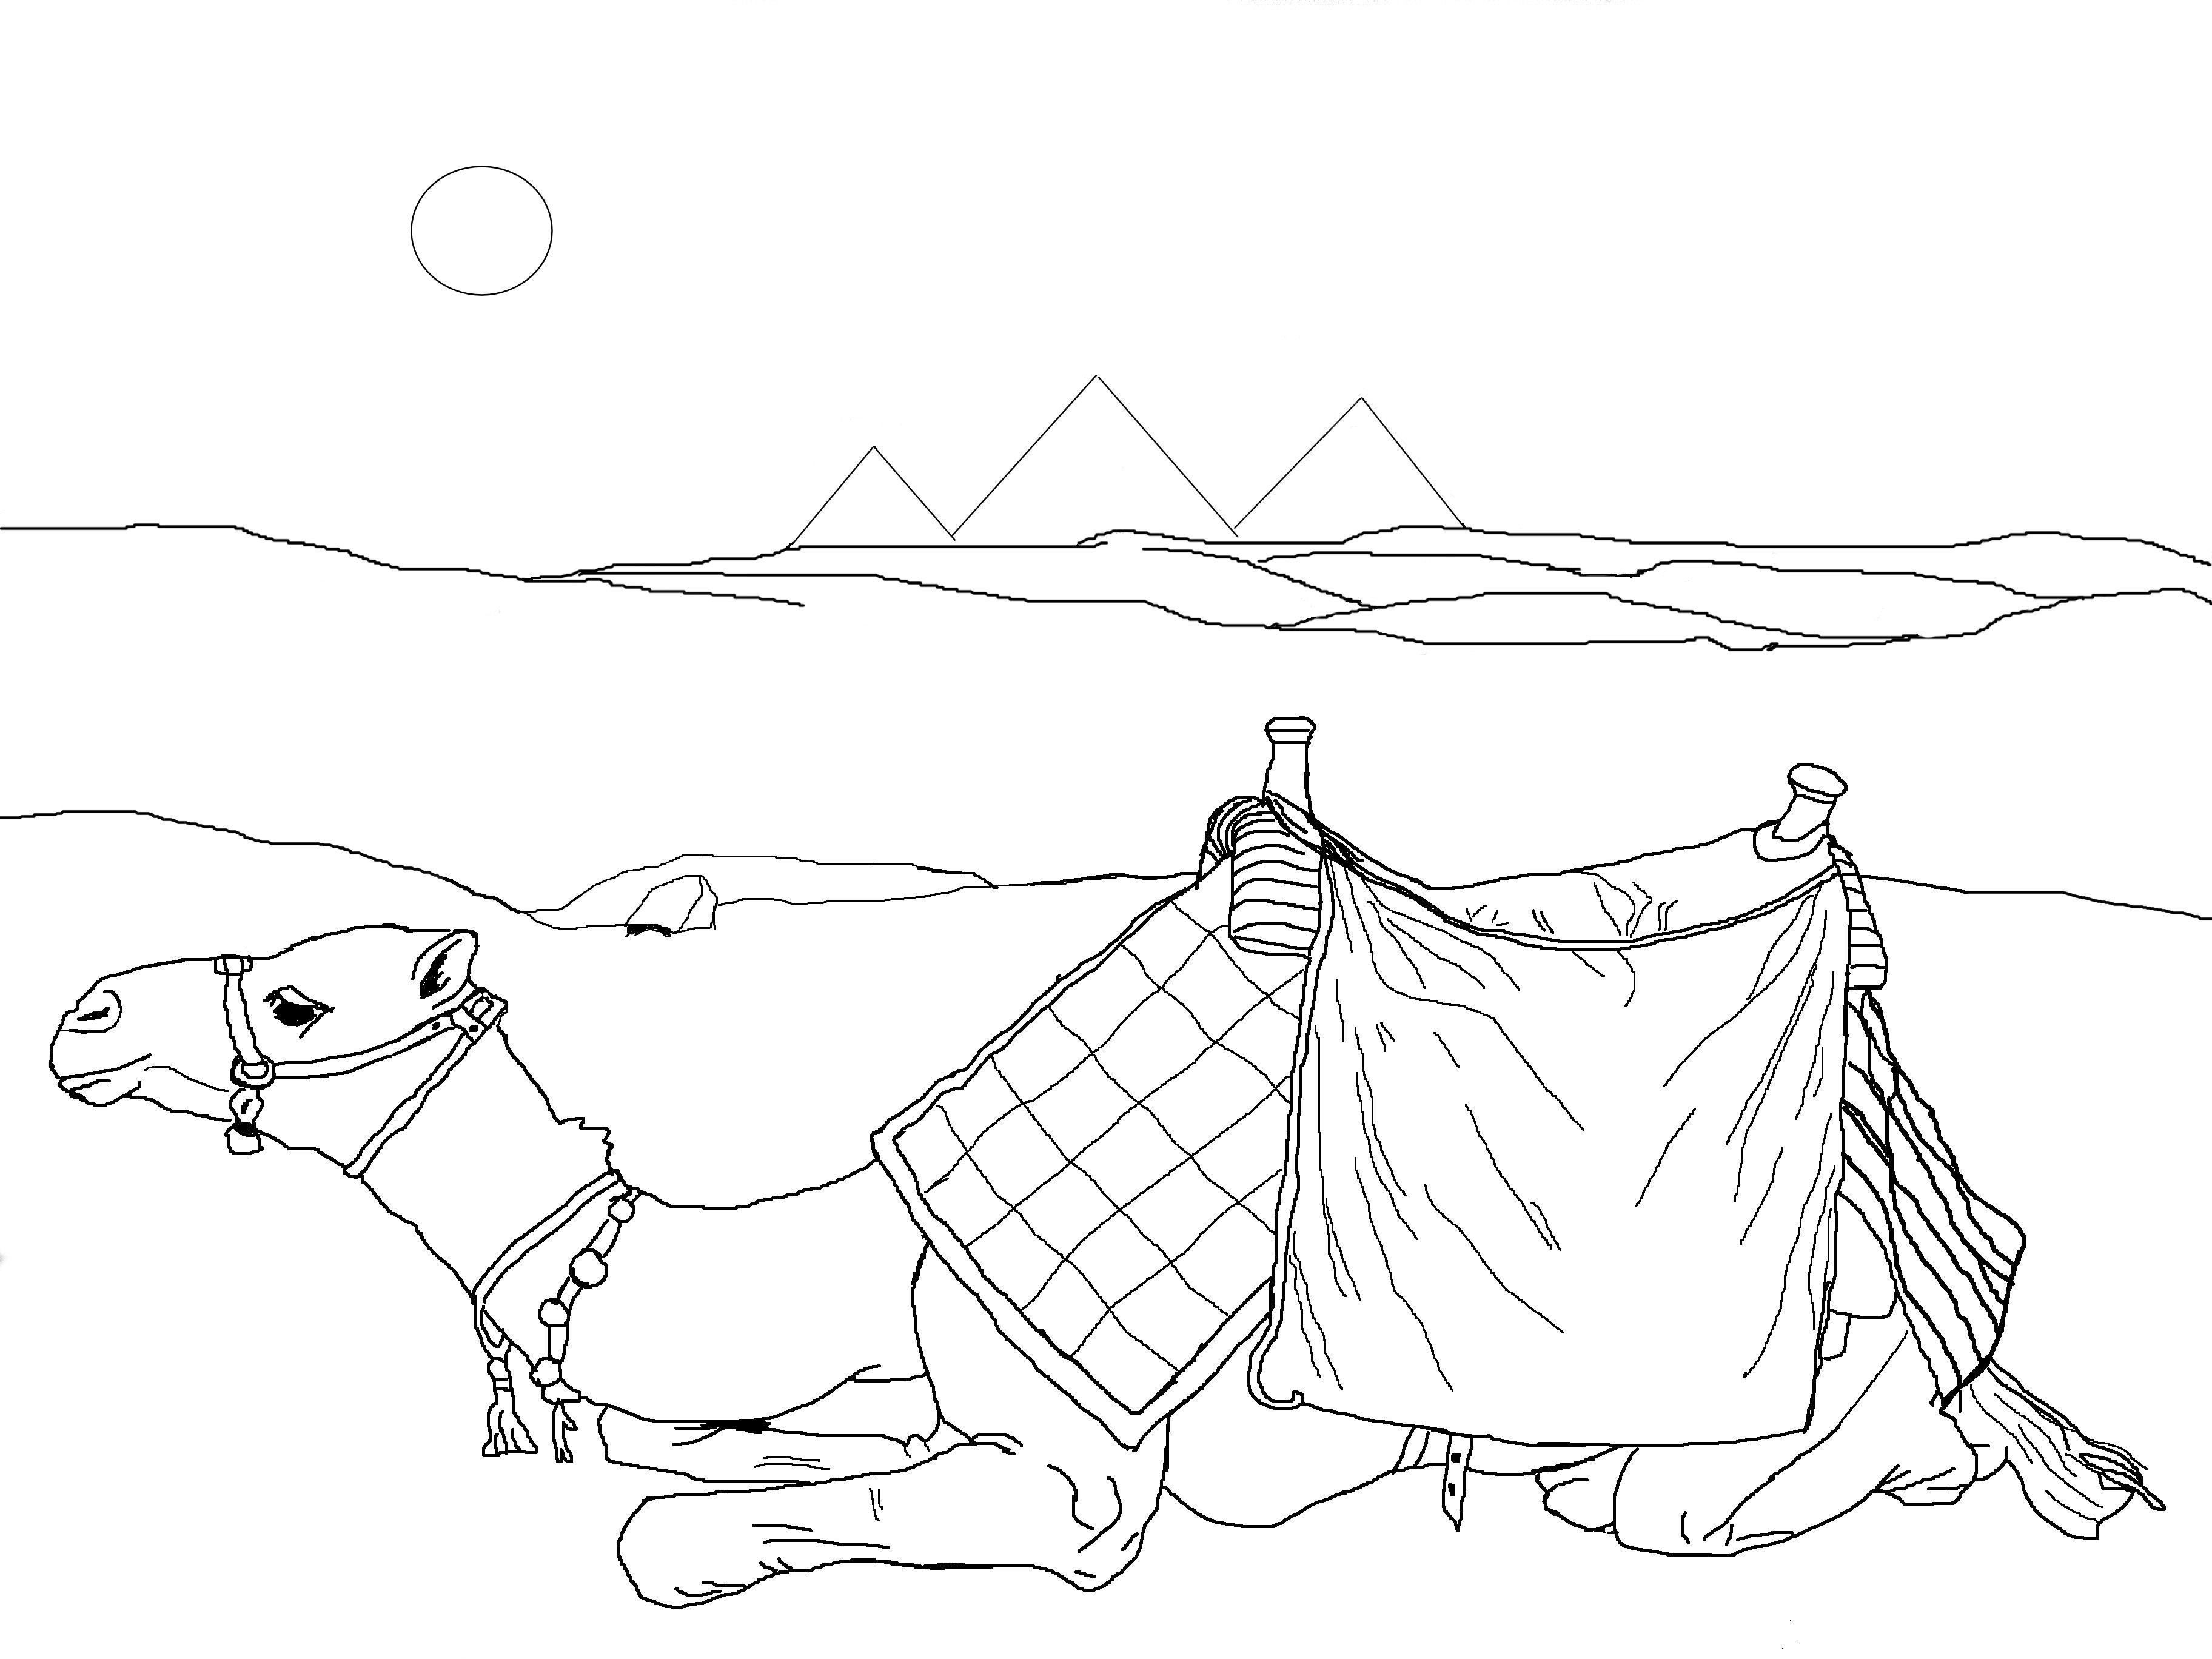 3648x2736 Middle East Desert Scene Coloring Pages Manna In The Desert